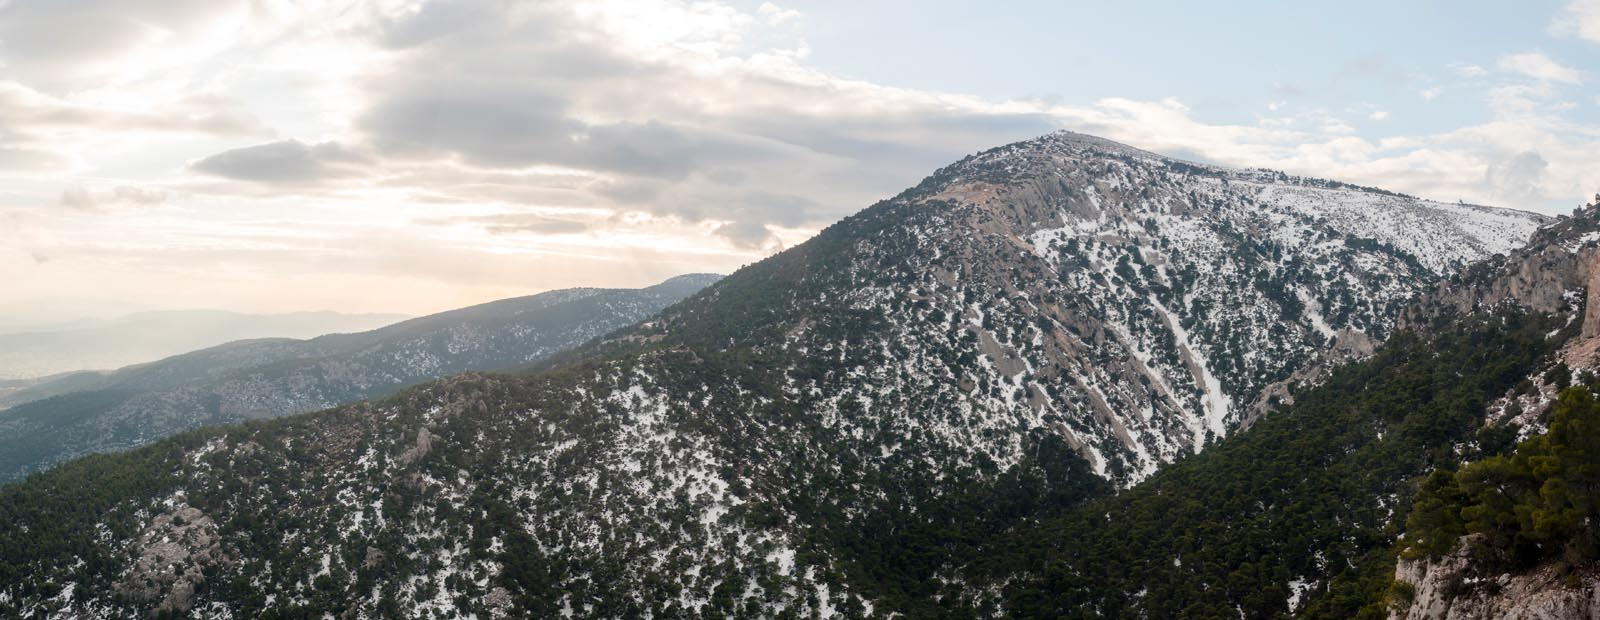 Enlarged - Mount Parnitha with Snow - Greece